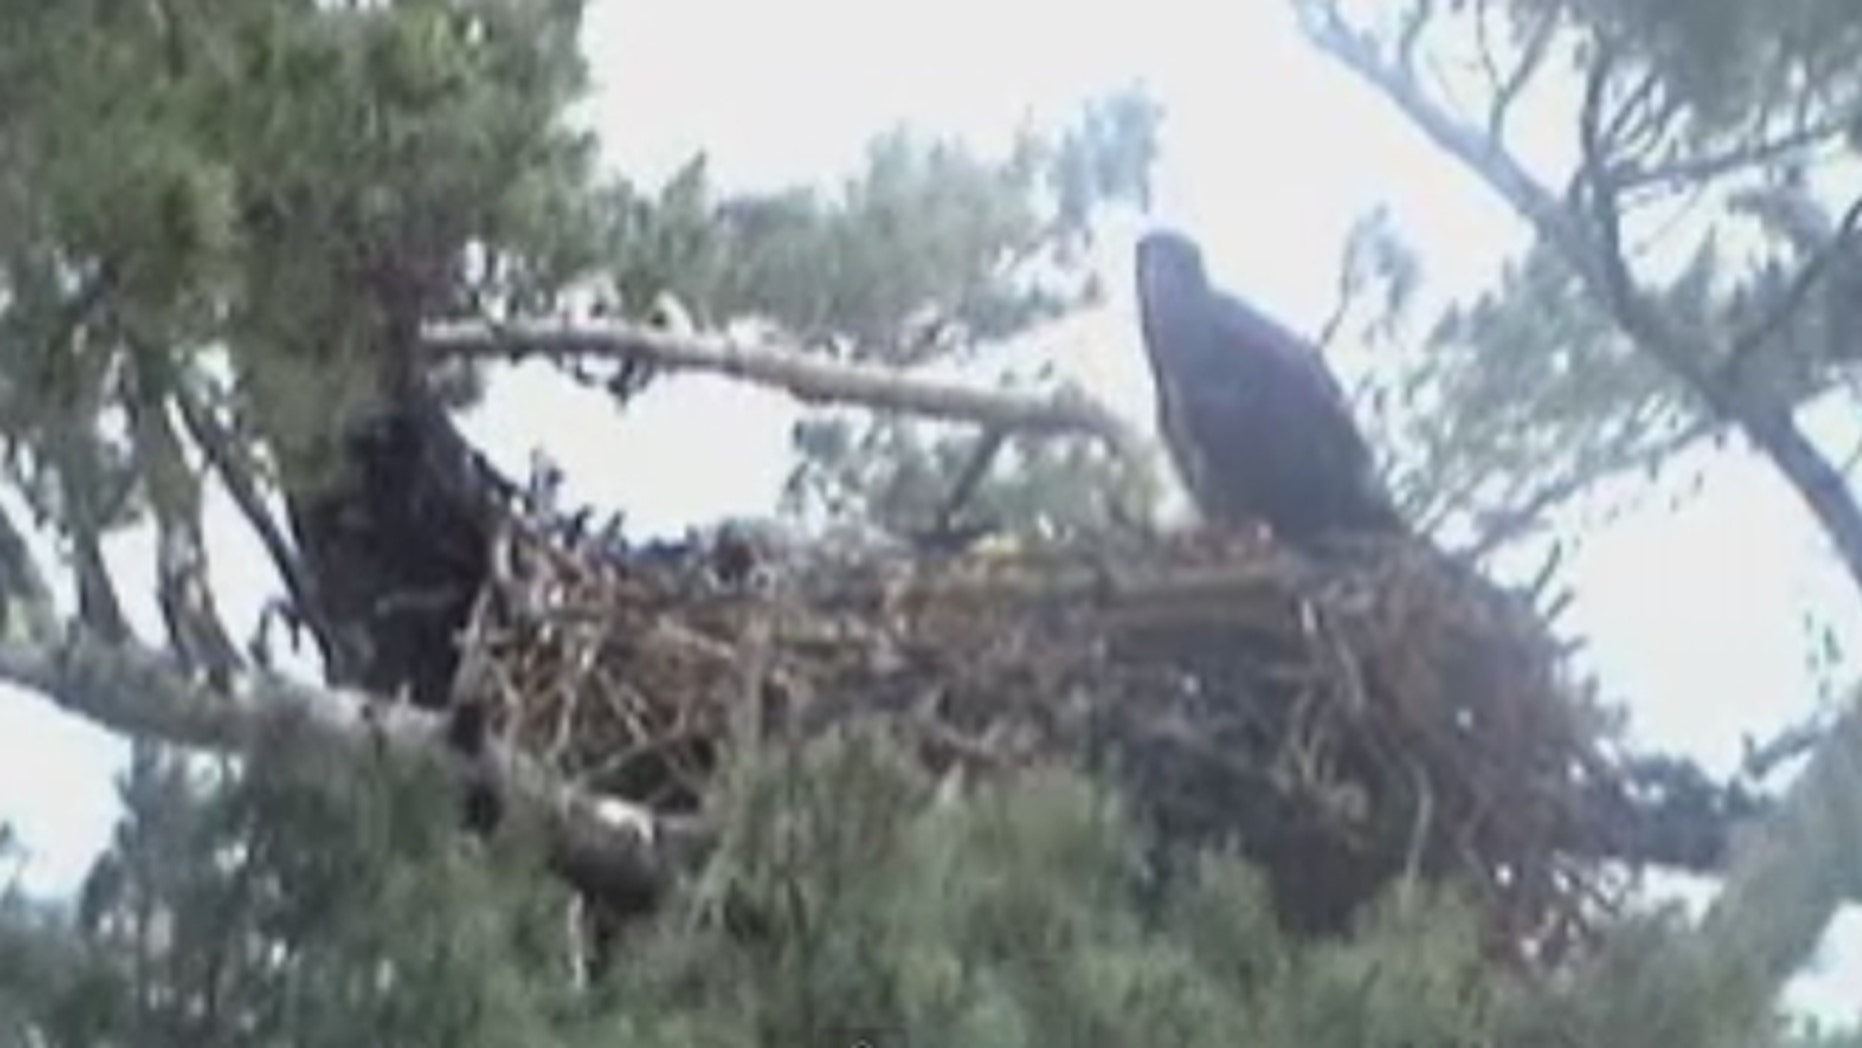 In coastal Maine, a struggling eaglet died last weekend after wildlife experts decided to let nature take its course, triggering outcry from viewers across the country.